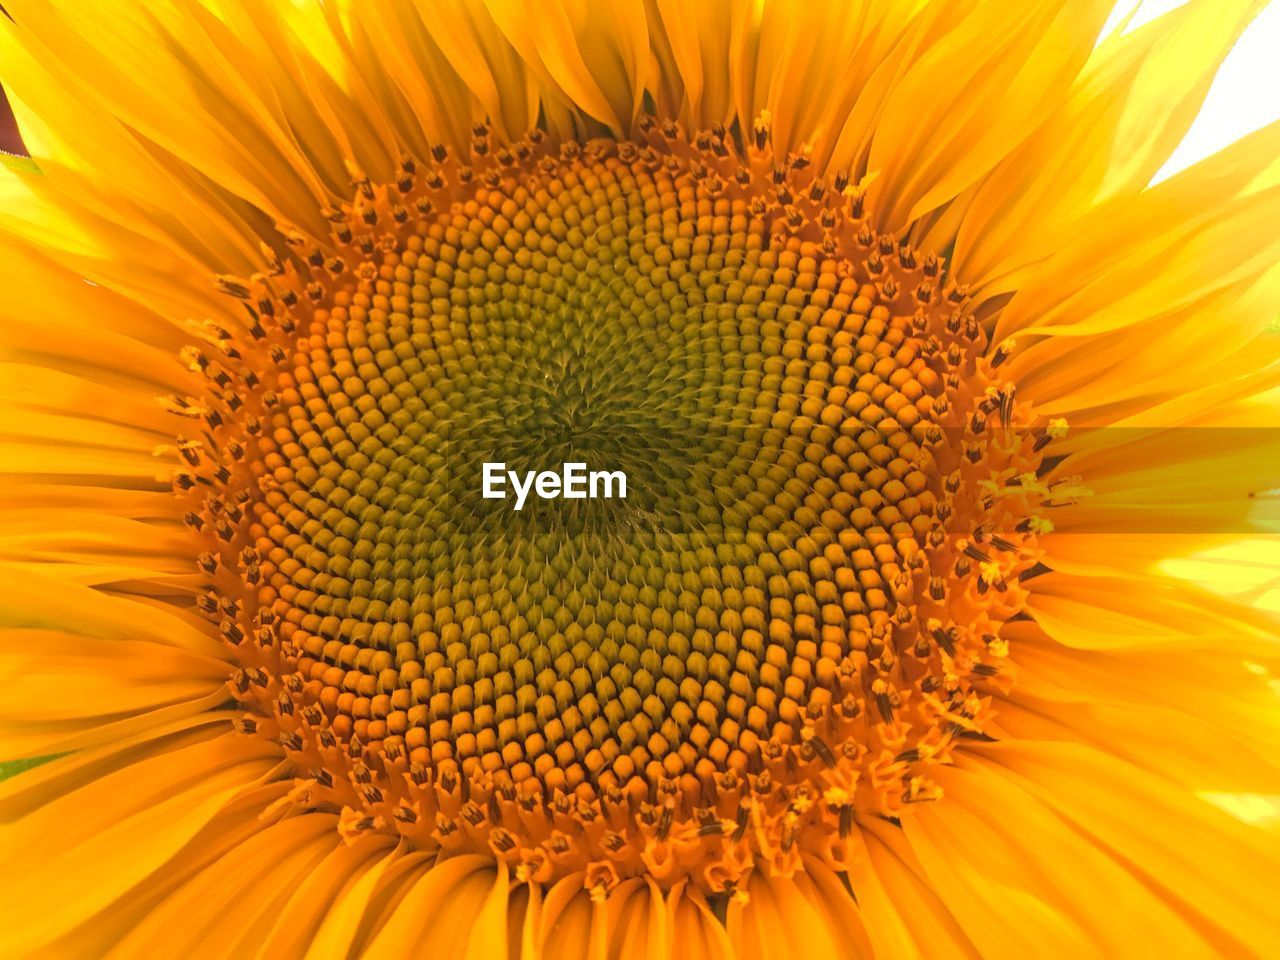 flowering plant, flower, fragility, freshness, plant, yellow, flower head, beauty in nature, vulnerability, growth, inflorescence, petal, close-up, pollen, backgrounds, full frame, nature, sunflower, no people, outdoors